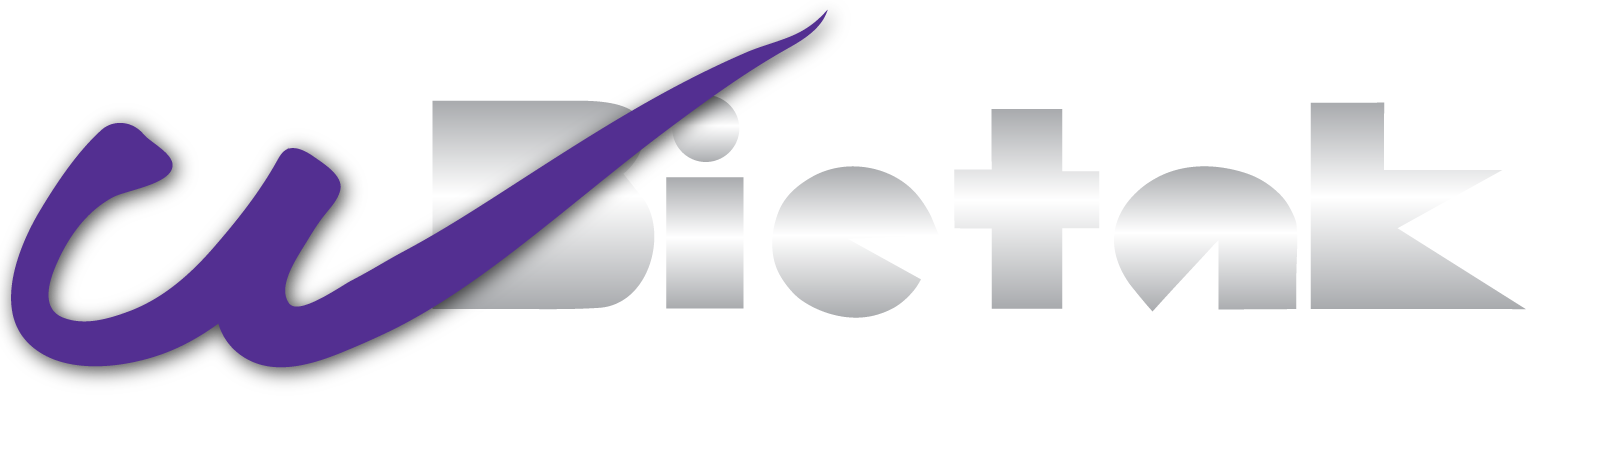 Bietak Productions, Inc.